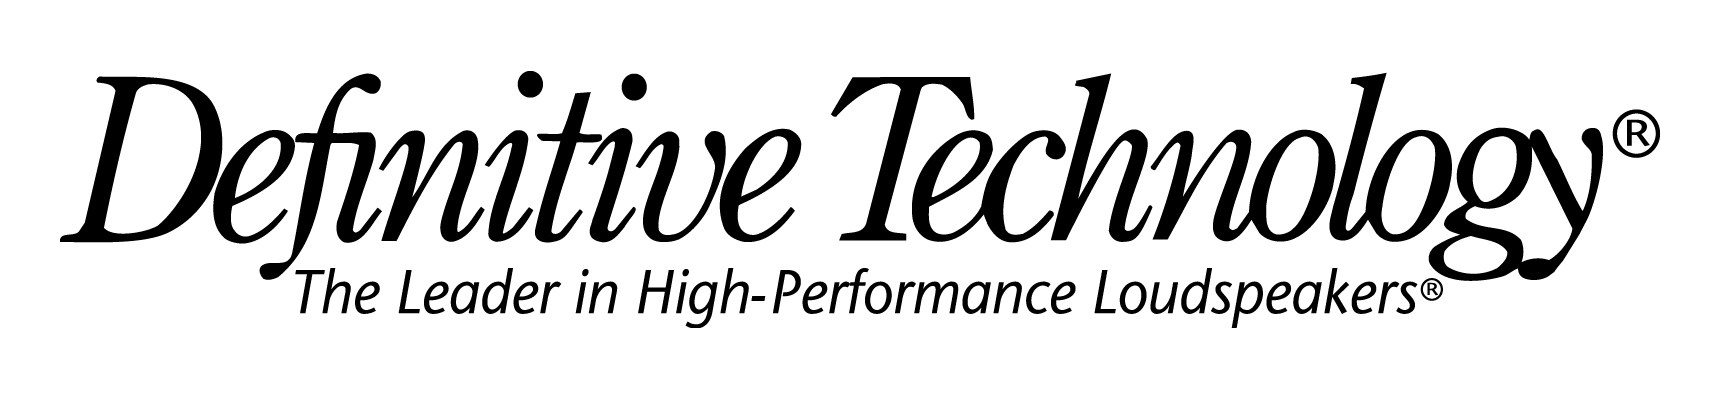 Definitive-Technology-Logo1